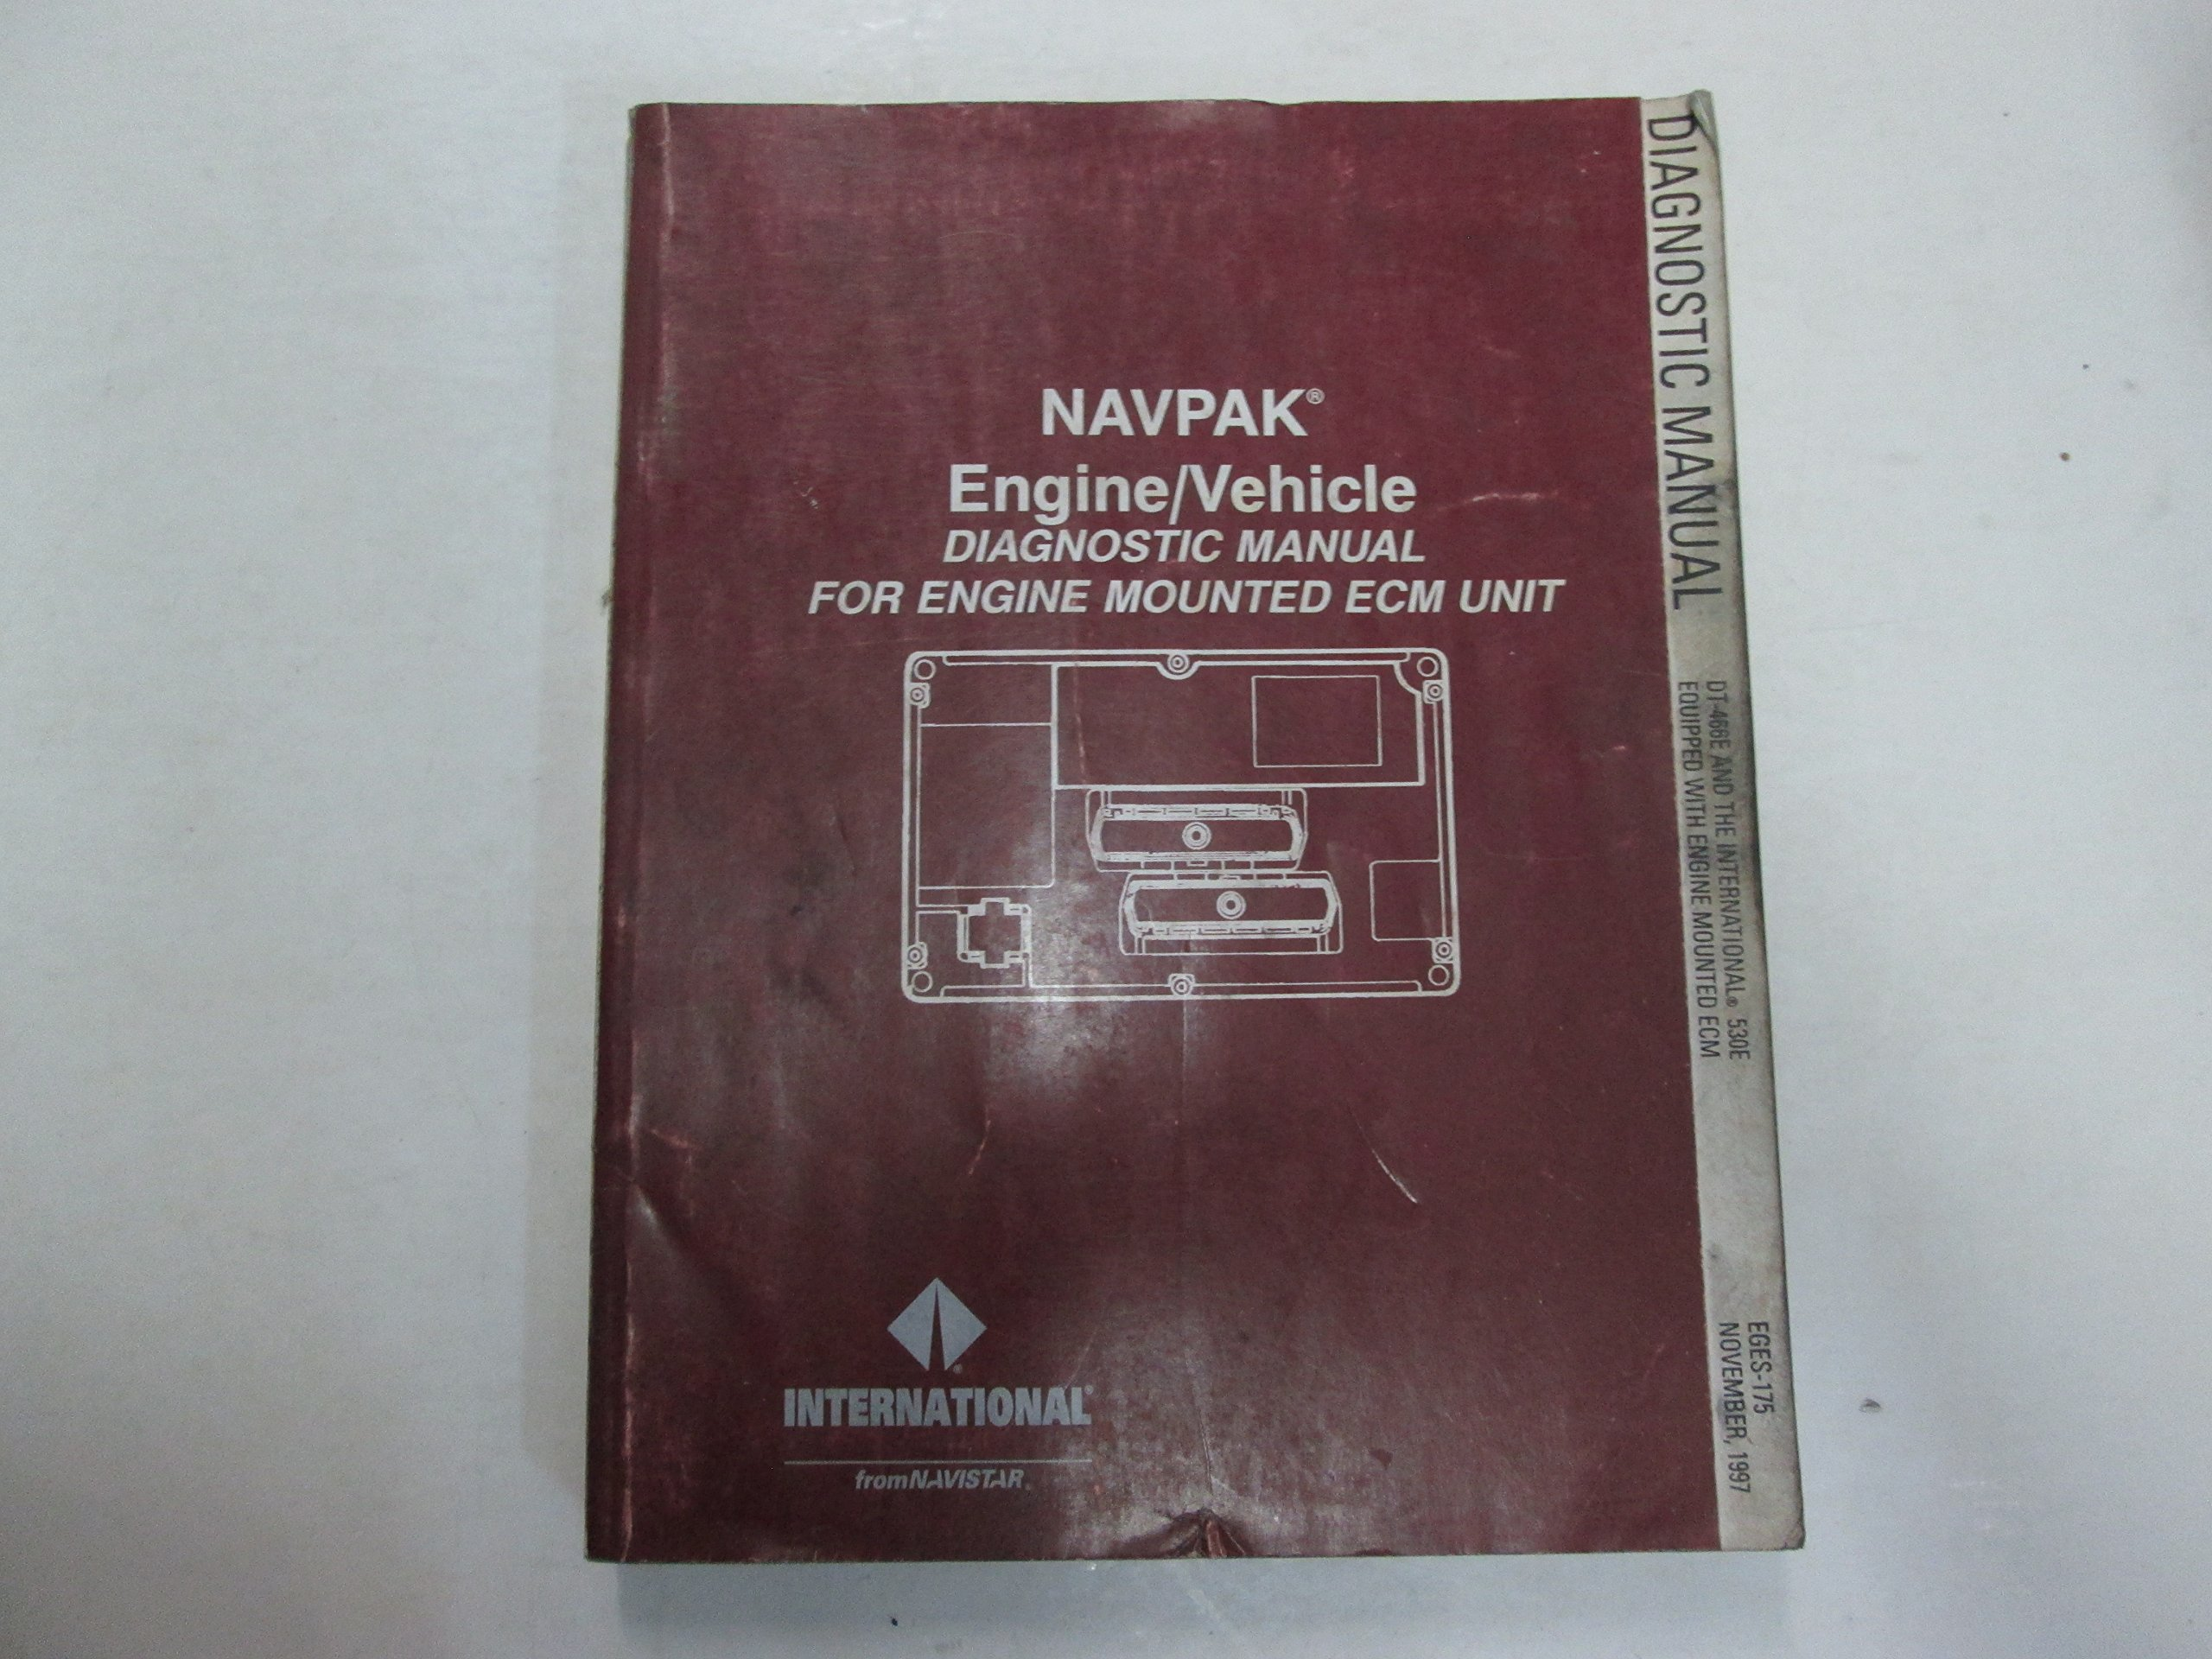 Navistar t444e manual t444e engine full array international navpak engine vehicle diagnostic manual engine mounted rh amazon com fandeluxe Images